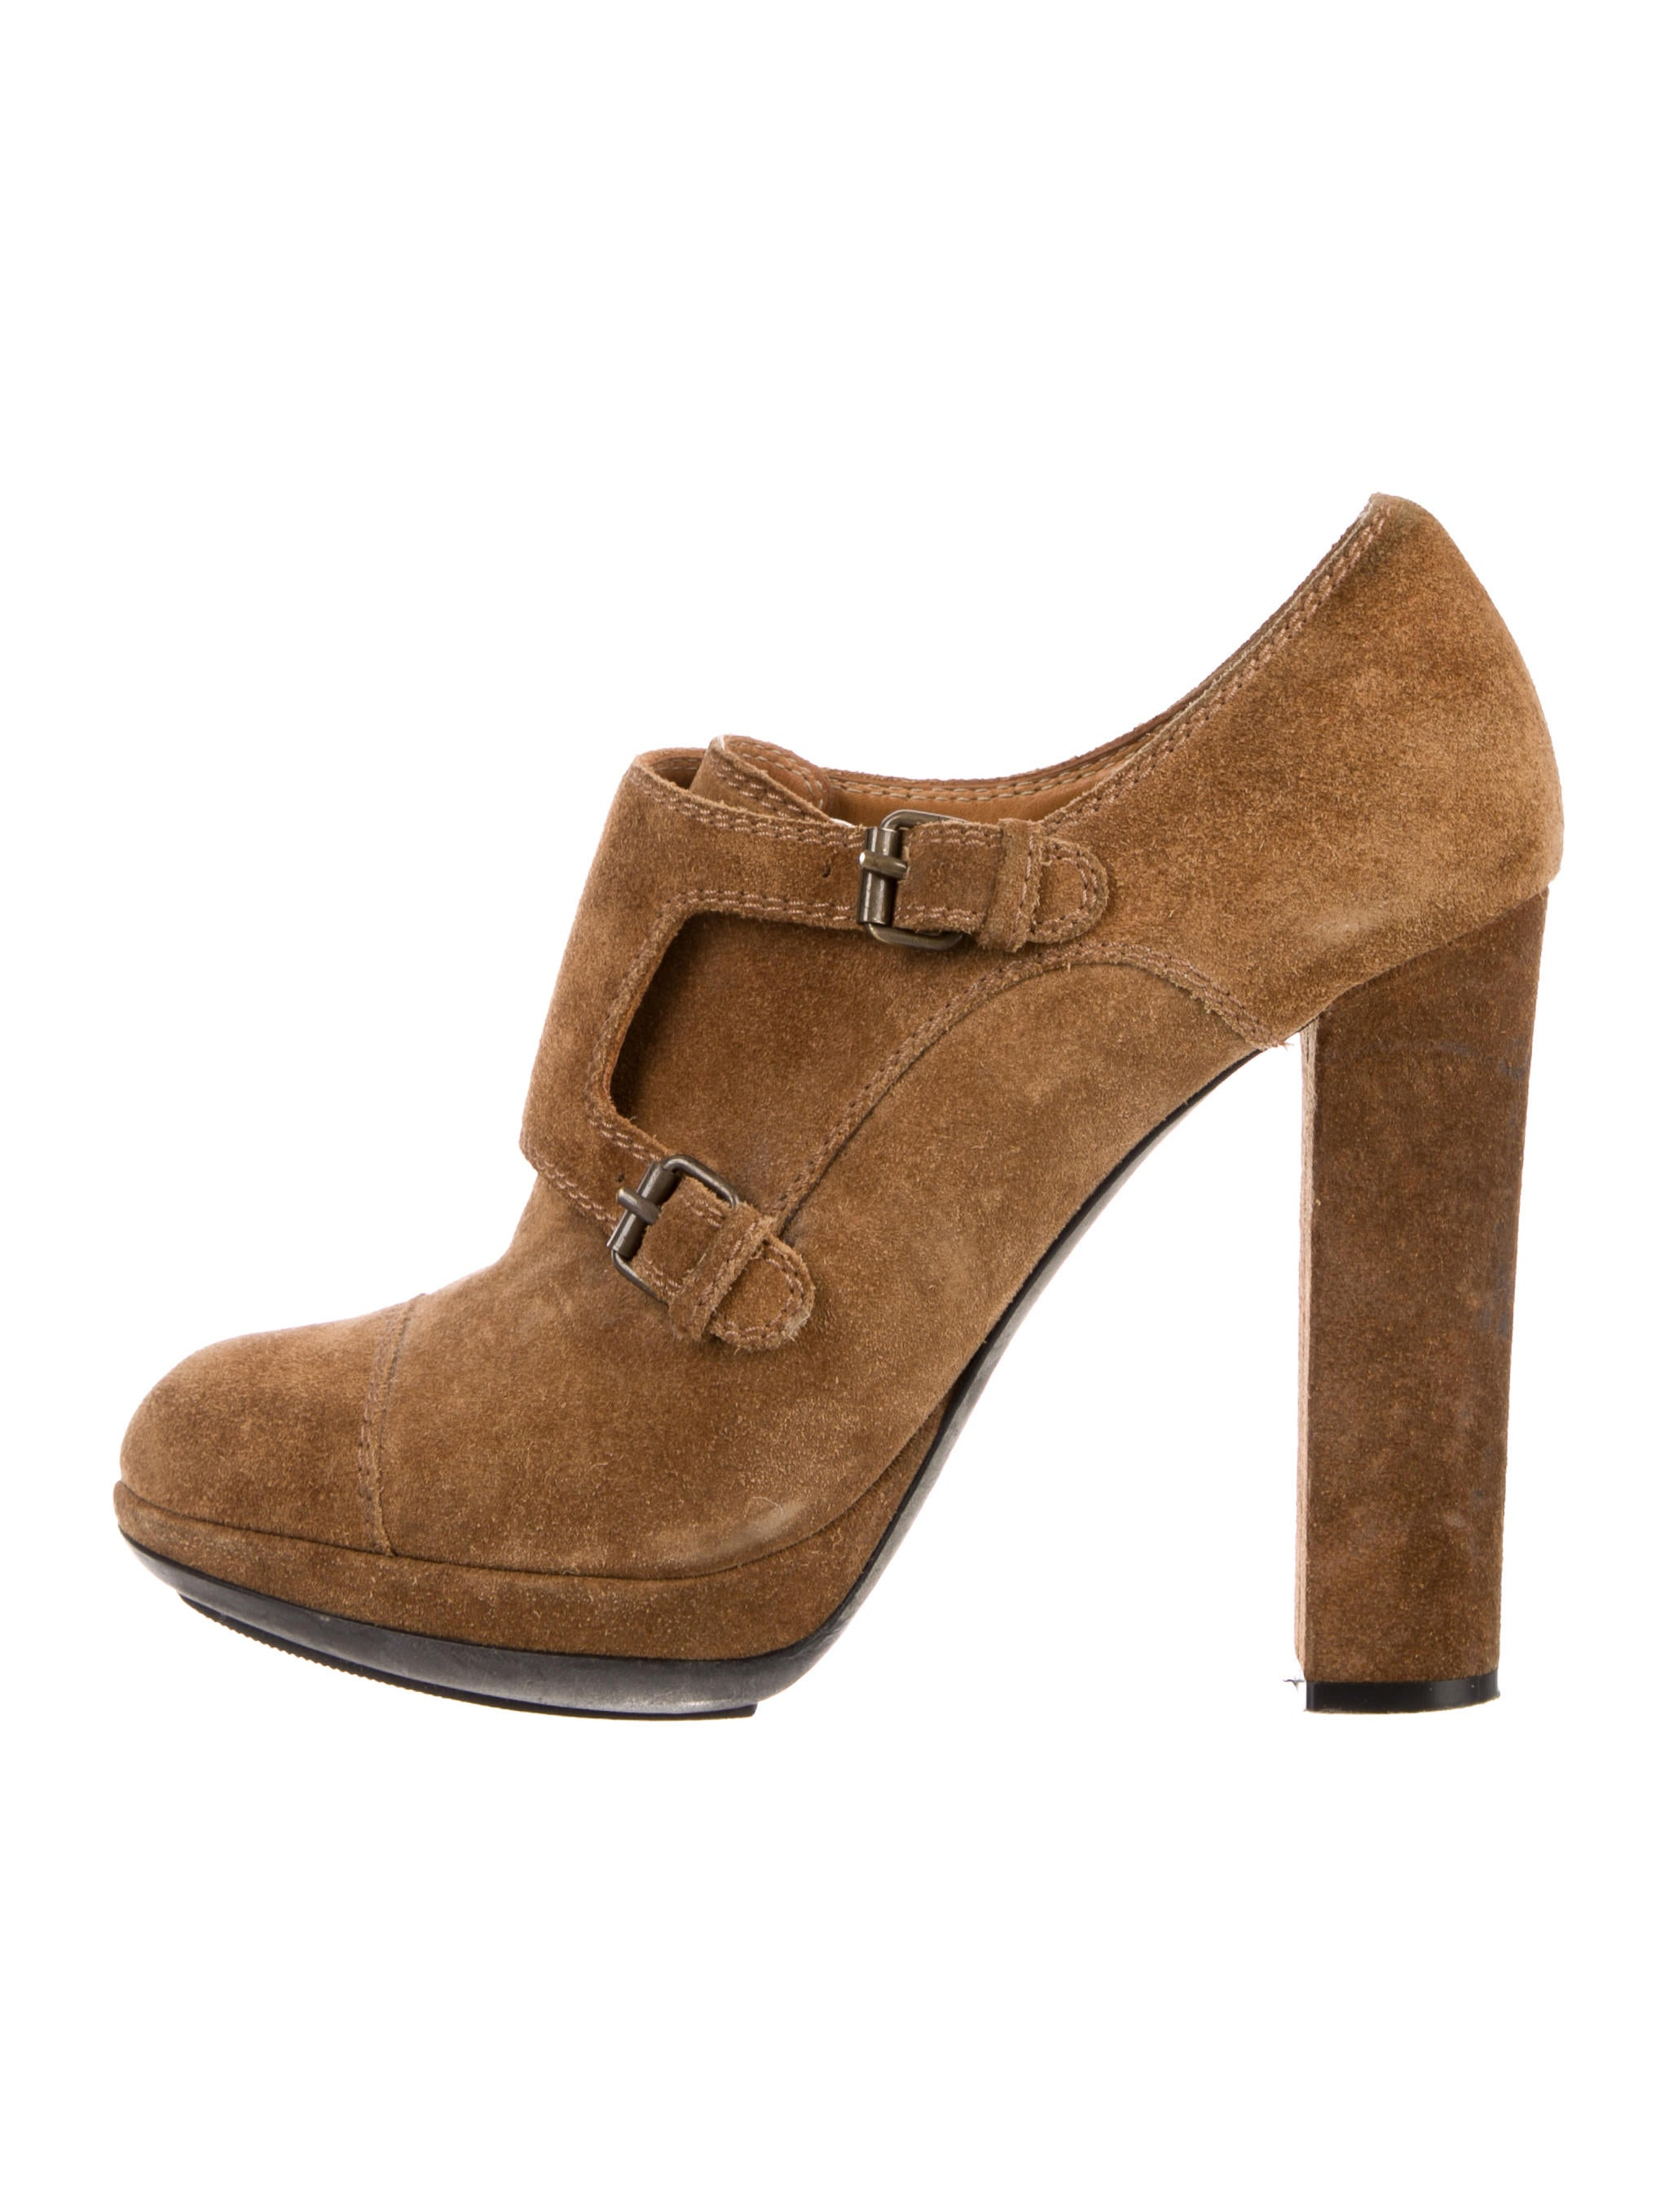 free shipping 100% authentic Lanvin Buckle Suede Booties outlet footlocker pictures free shipping largest supplier J5N0ipiM